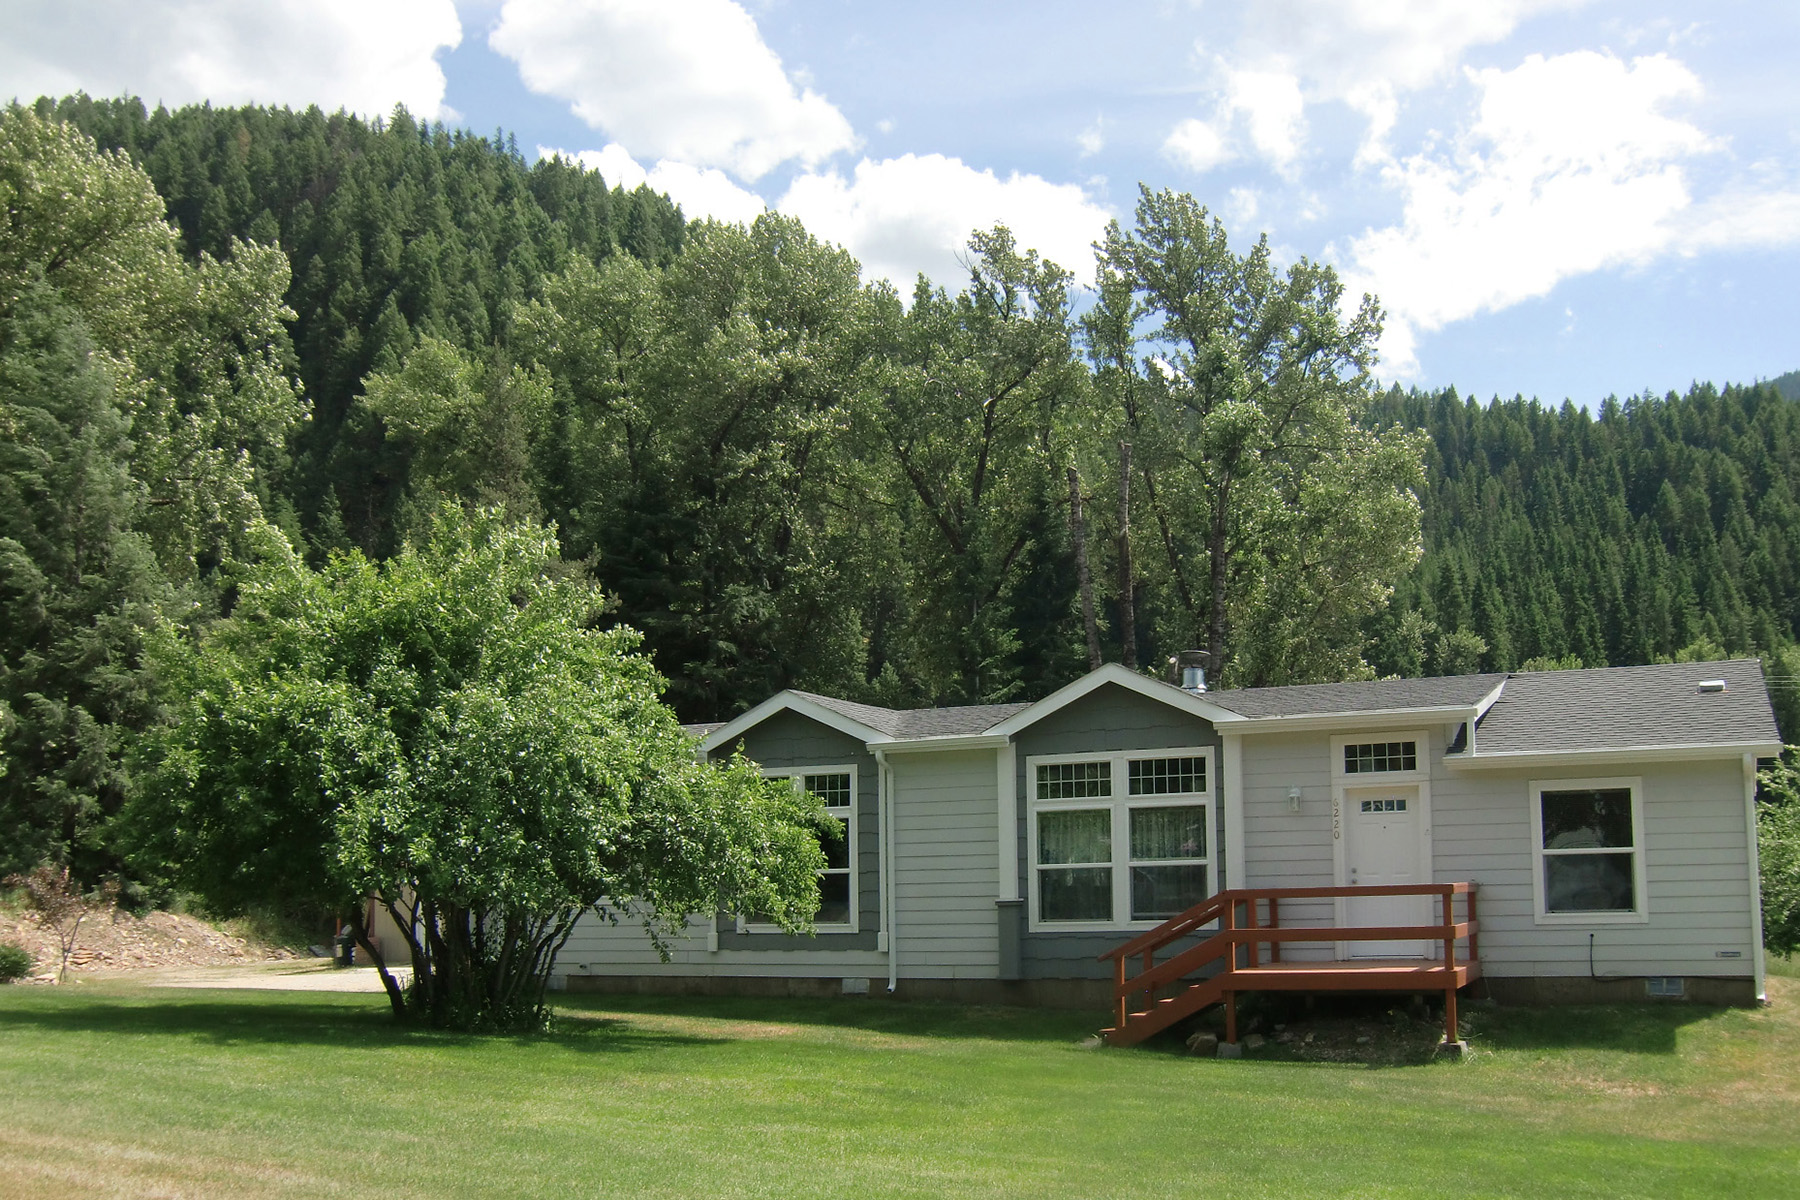 Casa Unifamiliar por un Venta en Escape The Hustle And Bustle 6220 Prichard Creek RD Murray, Idaho 83874 Estados Unidos